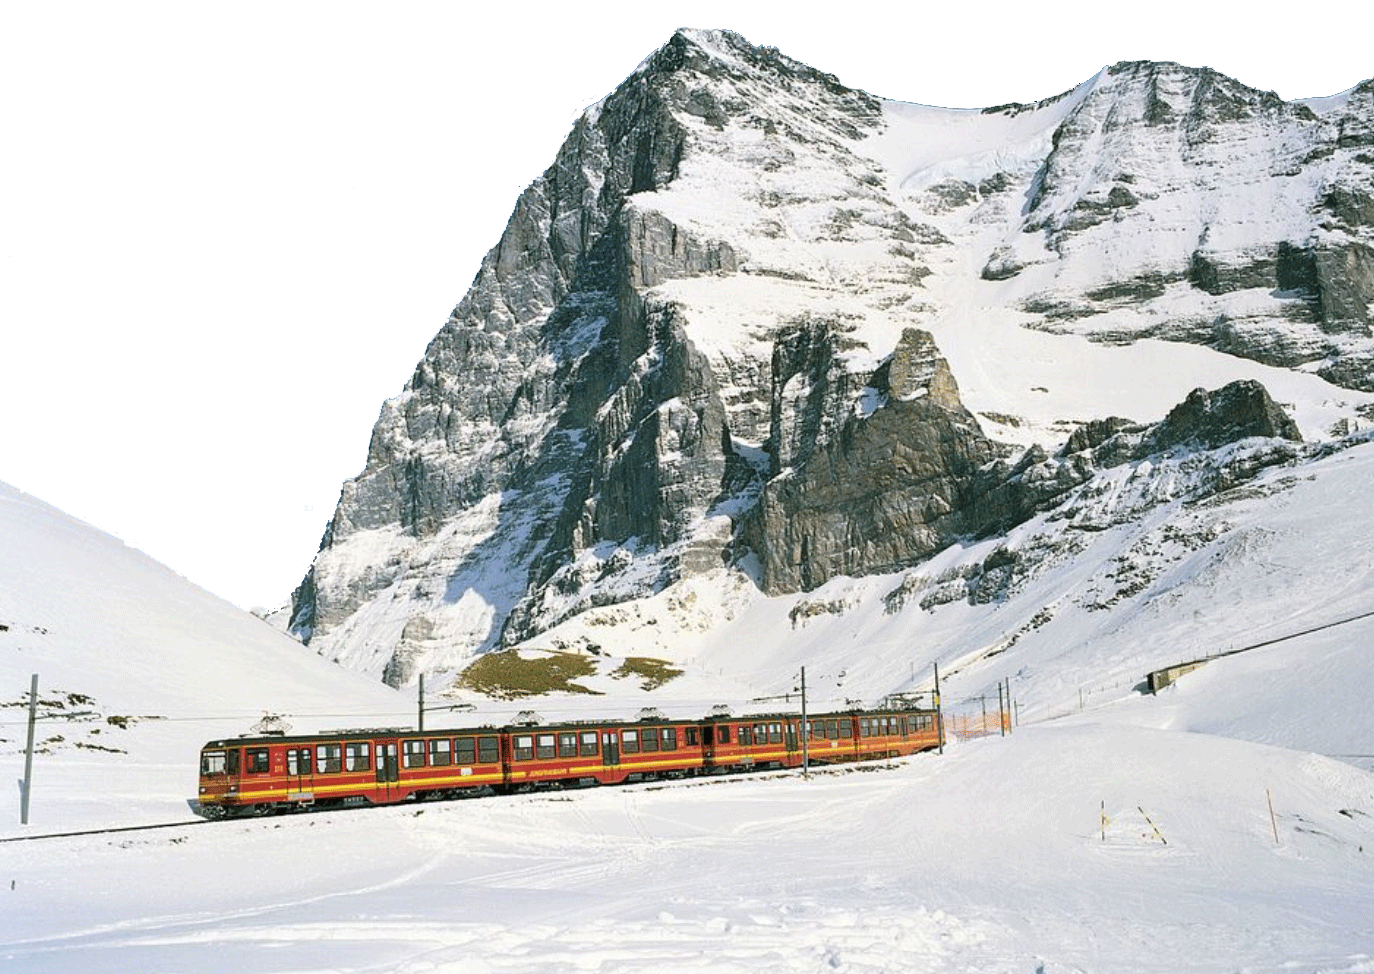 Train ride by Snowy Alps - Switzerland PNG Image